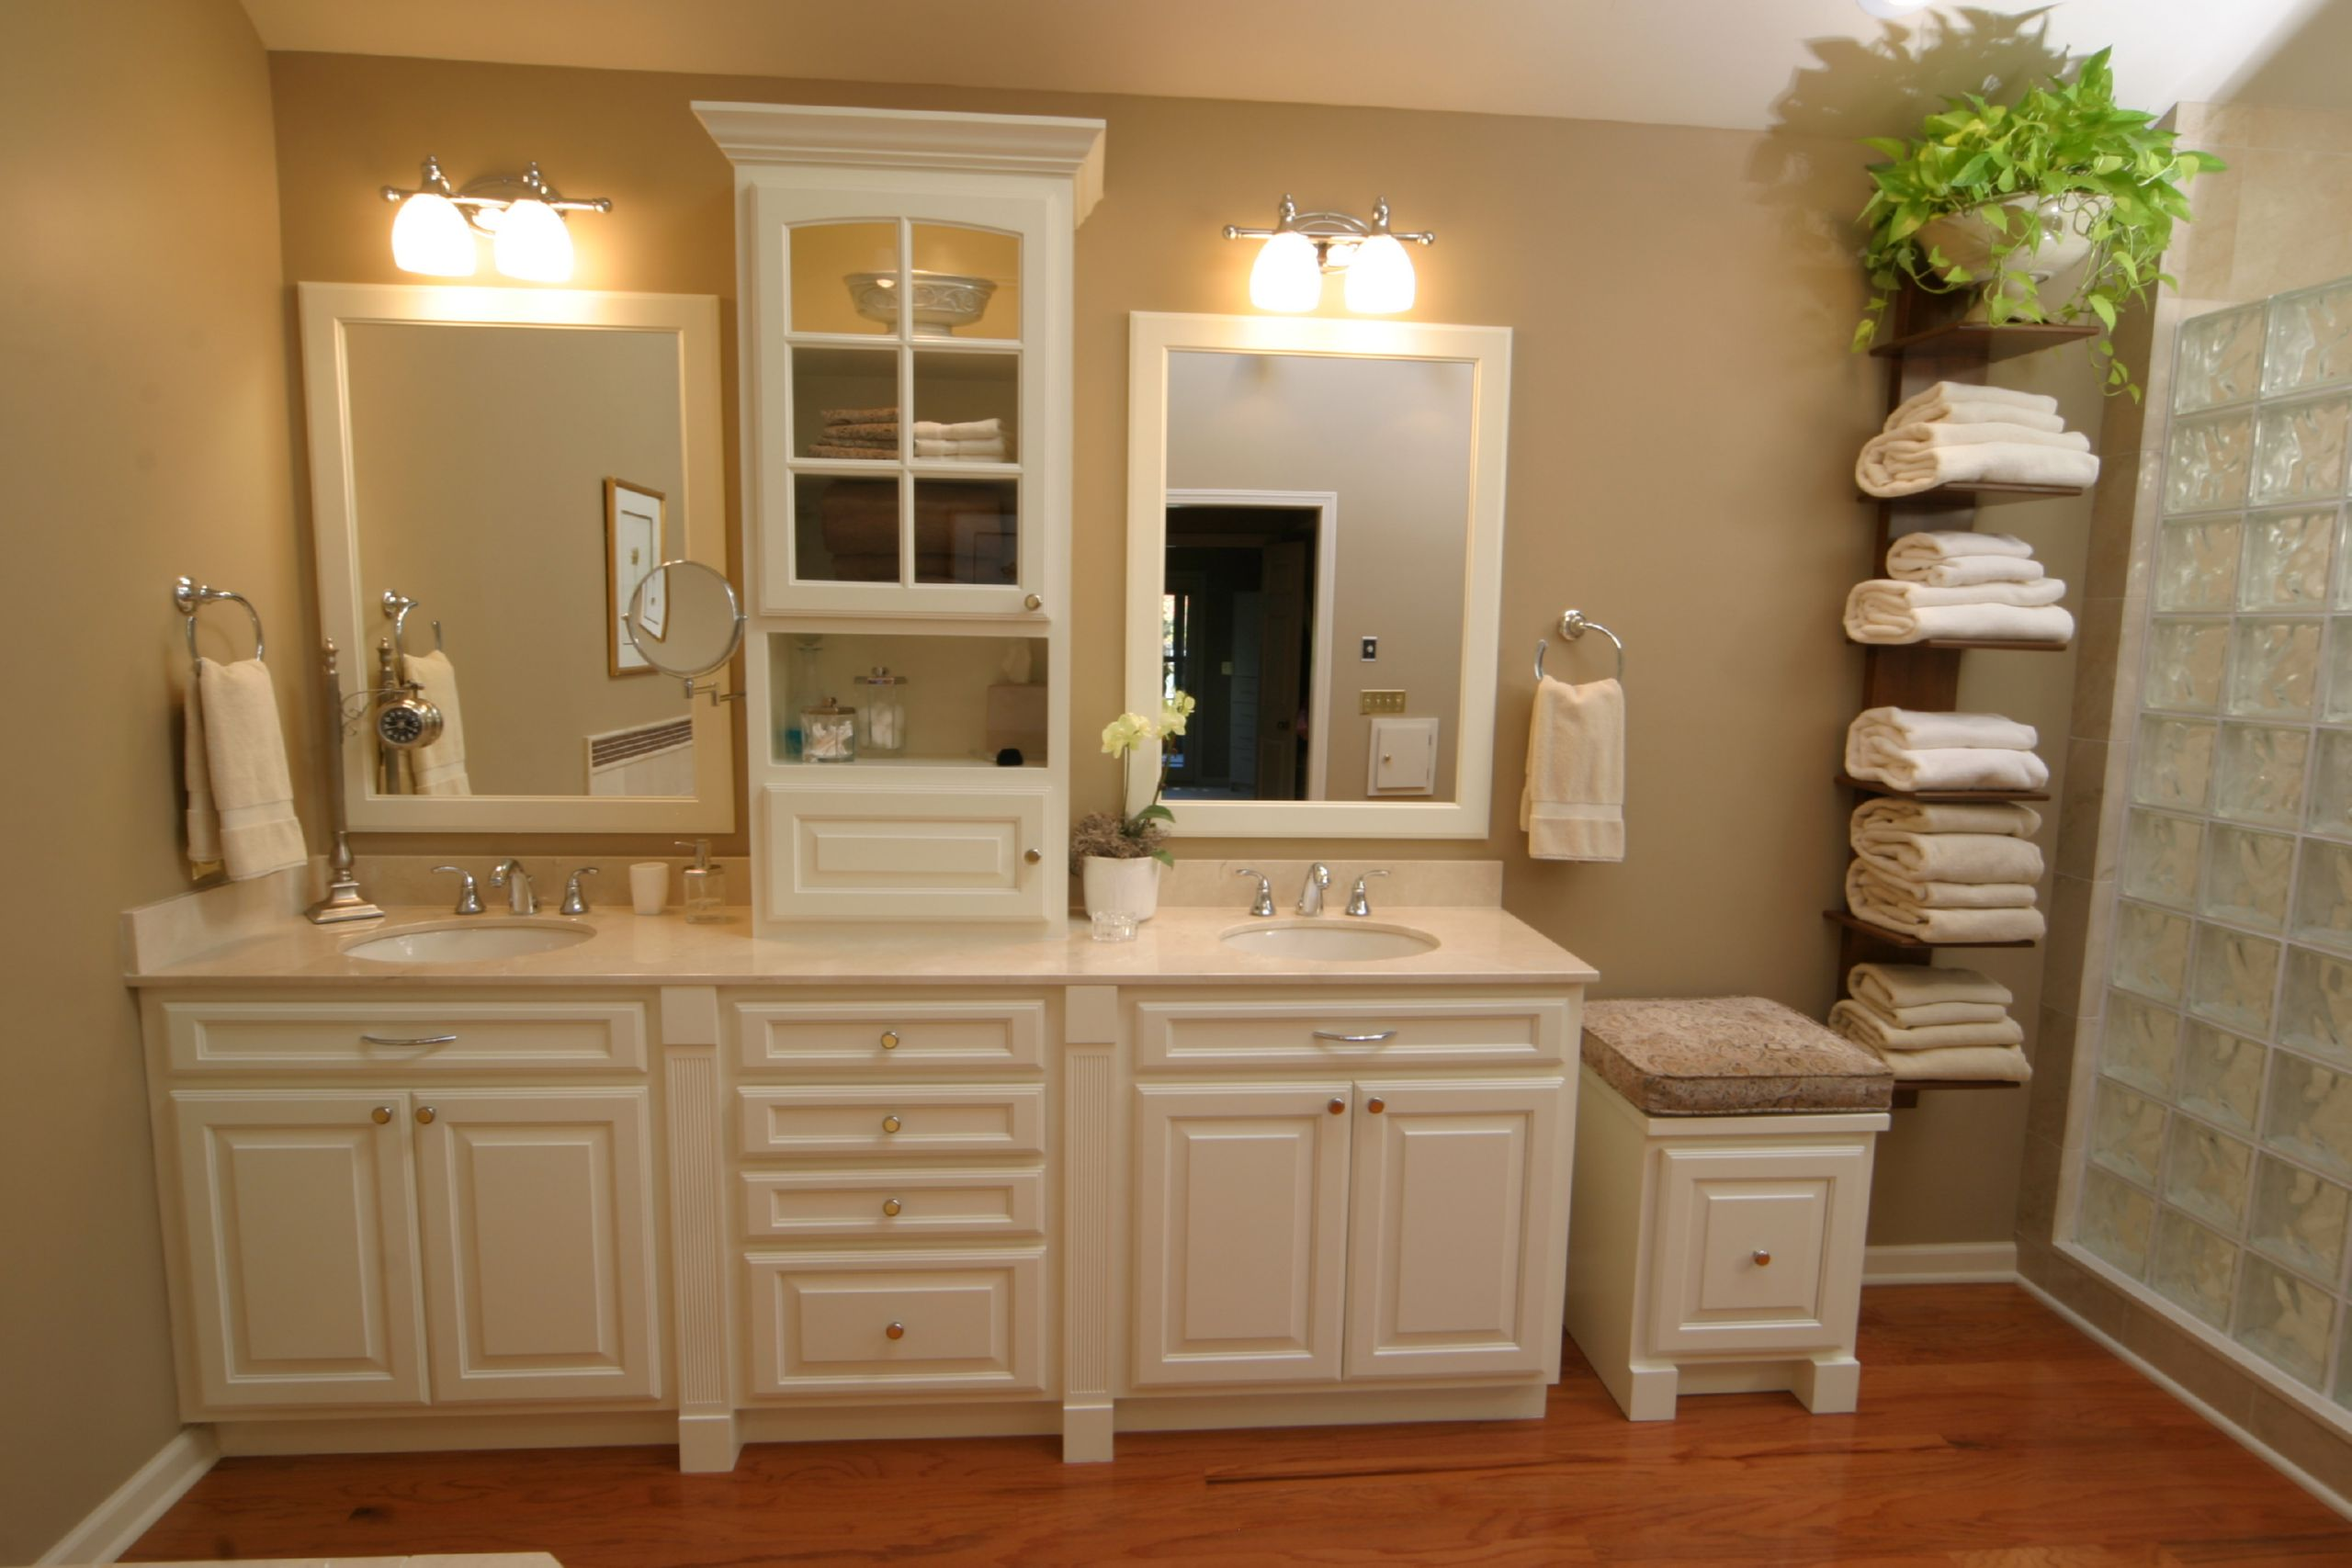 Bathroom remodeling bath remodel contractor for Home bathroom remodel